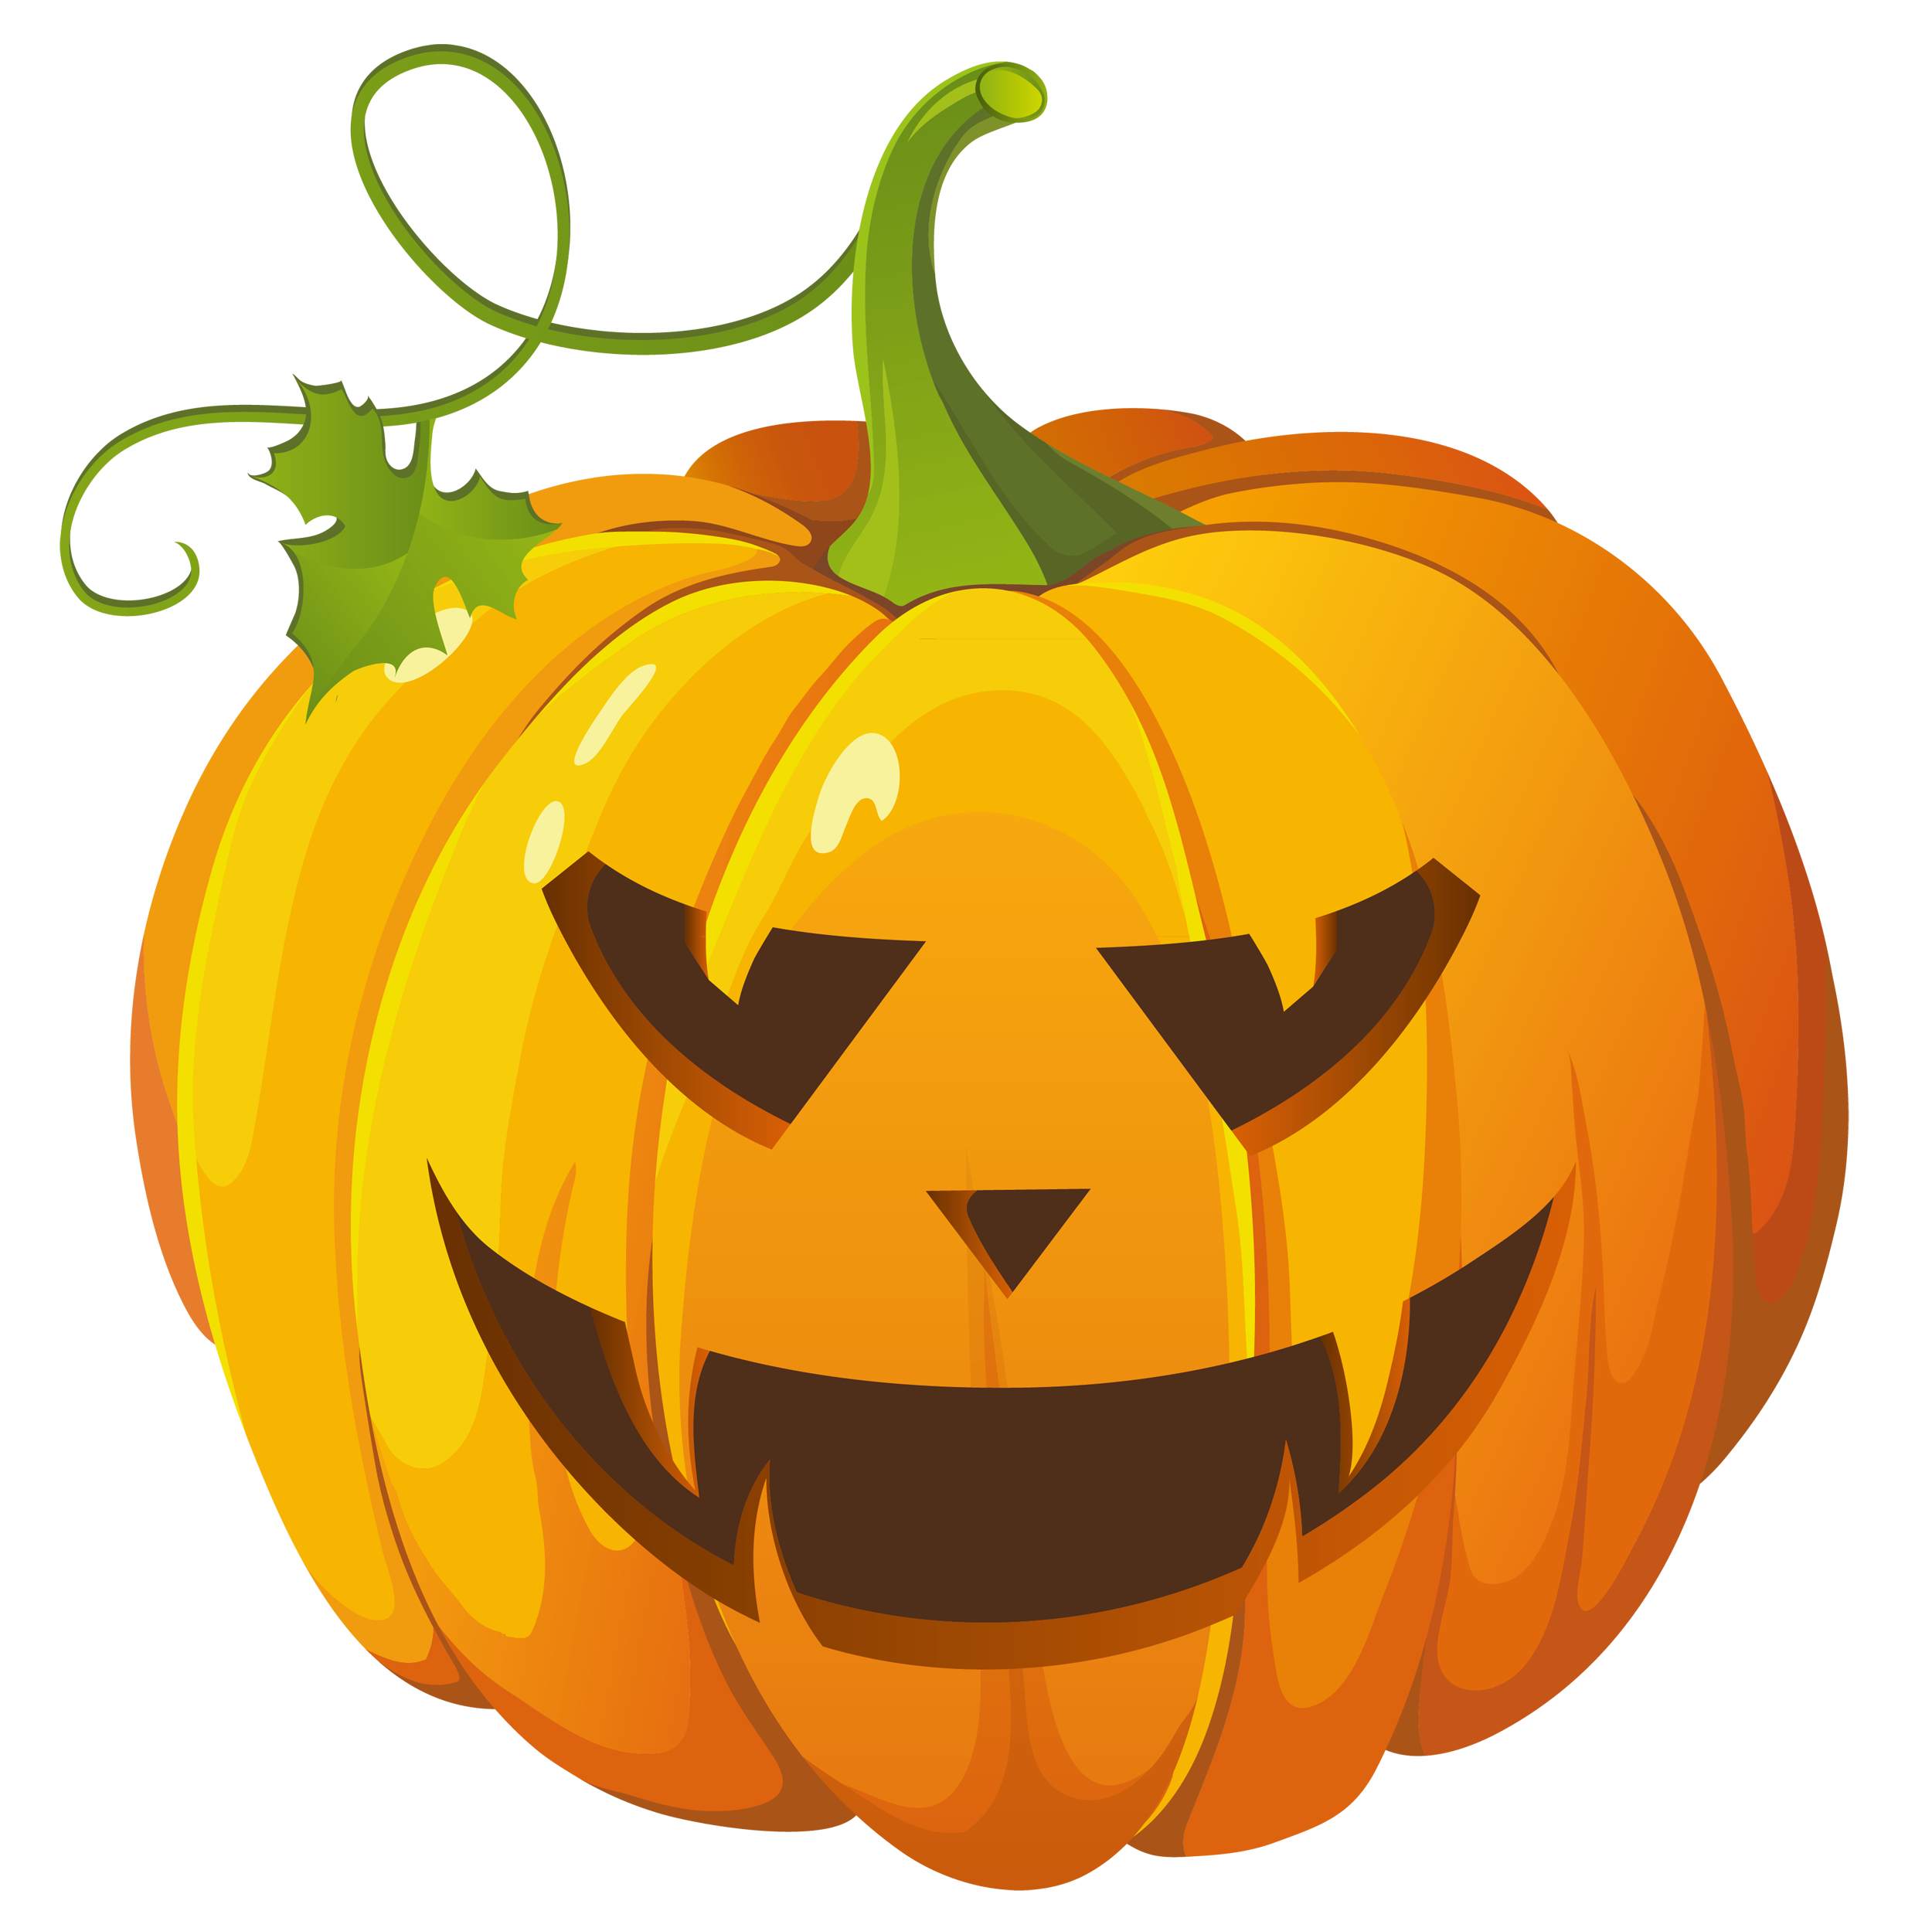 Bad pumpkin clipart